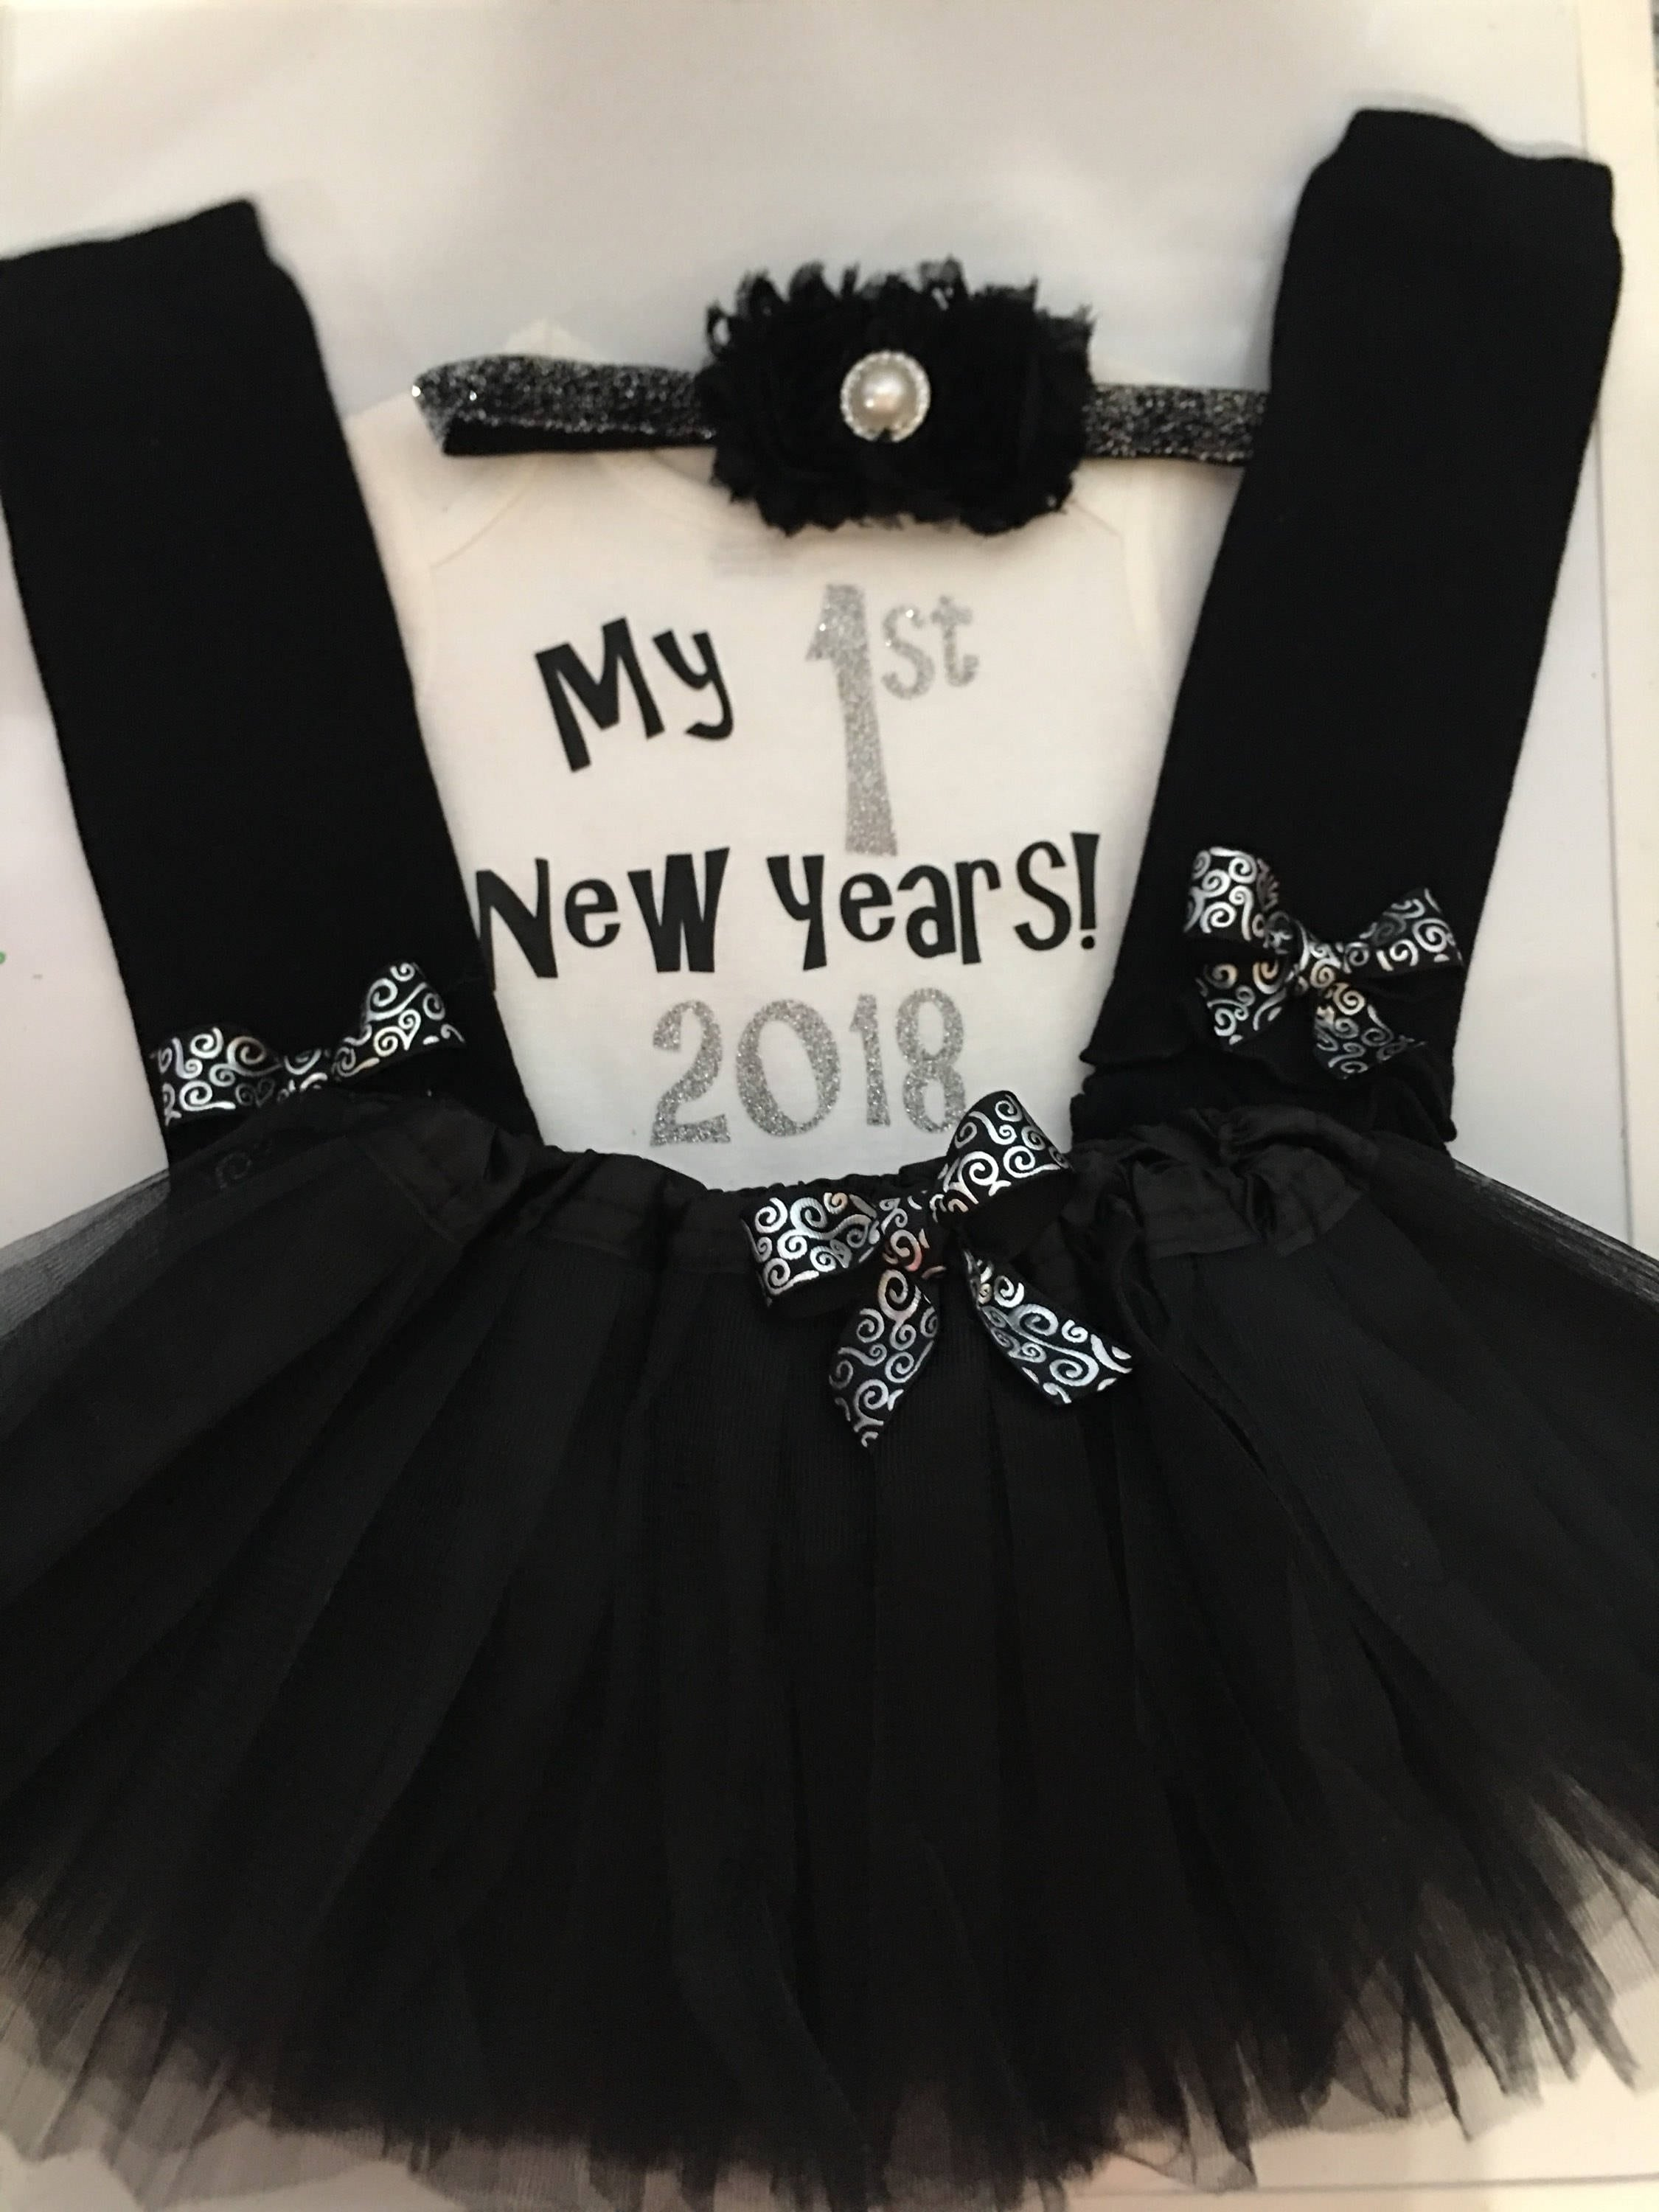 677462cc1a6a ... my first new years outfit - 2019 New years baby outfit - baby girl  photo prop-TUTU. gallery photo ...